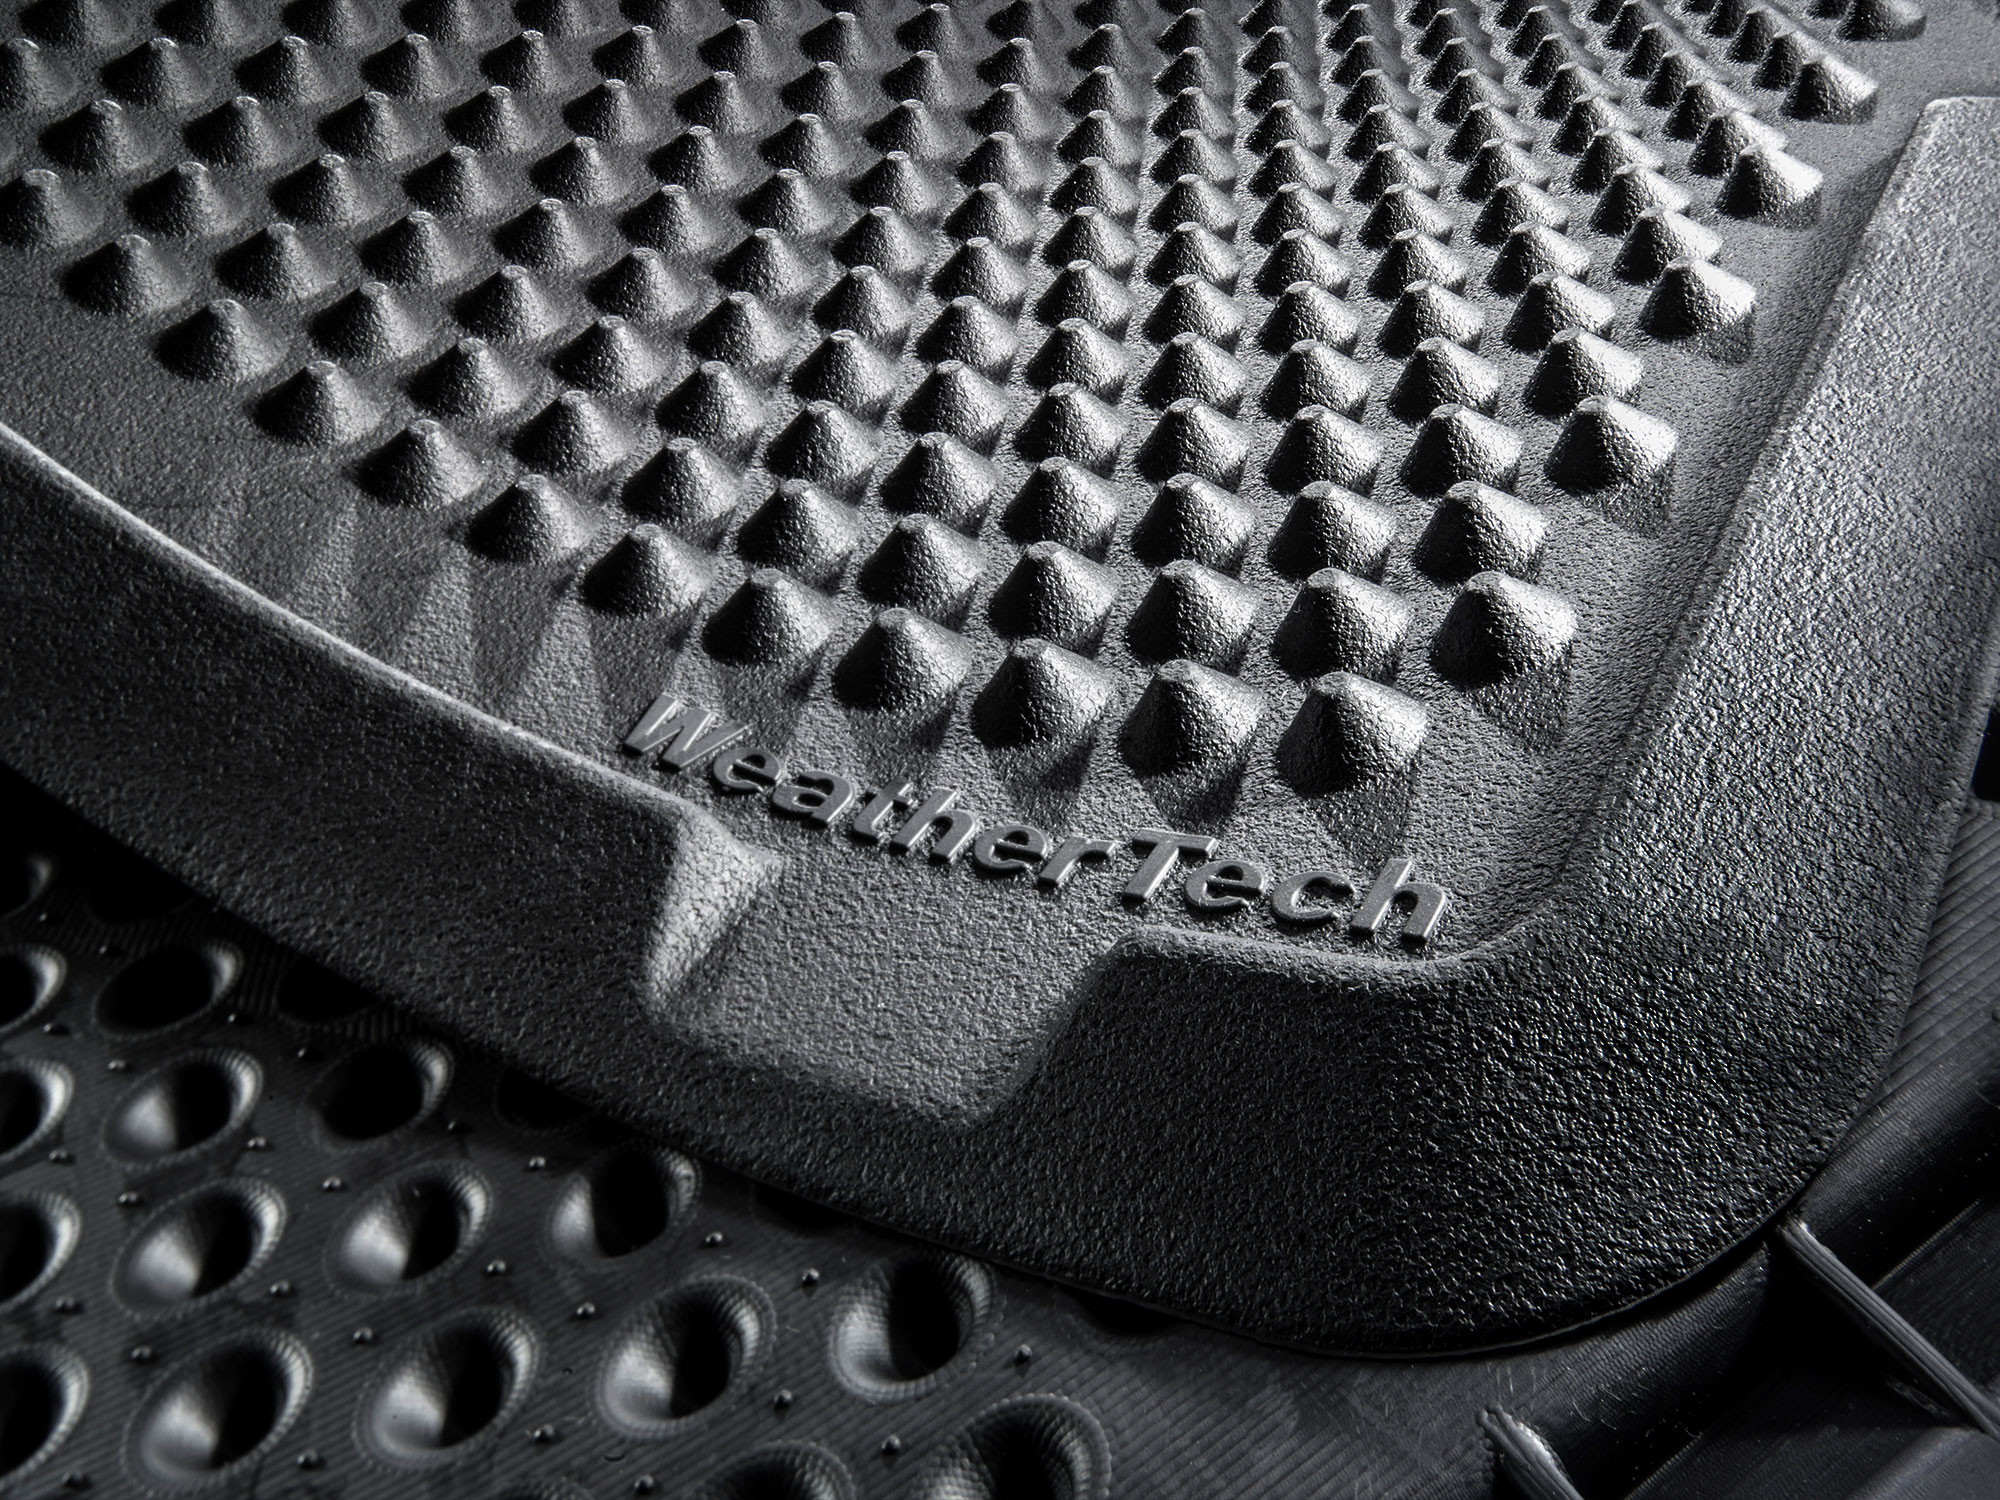 WeatherTech Outdoor Mat's semi-rigid cones help keep messes contained on the mat instead of tracked all over your house. Perfect for use with cat litter or in a workshop.